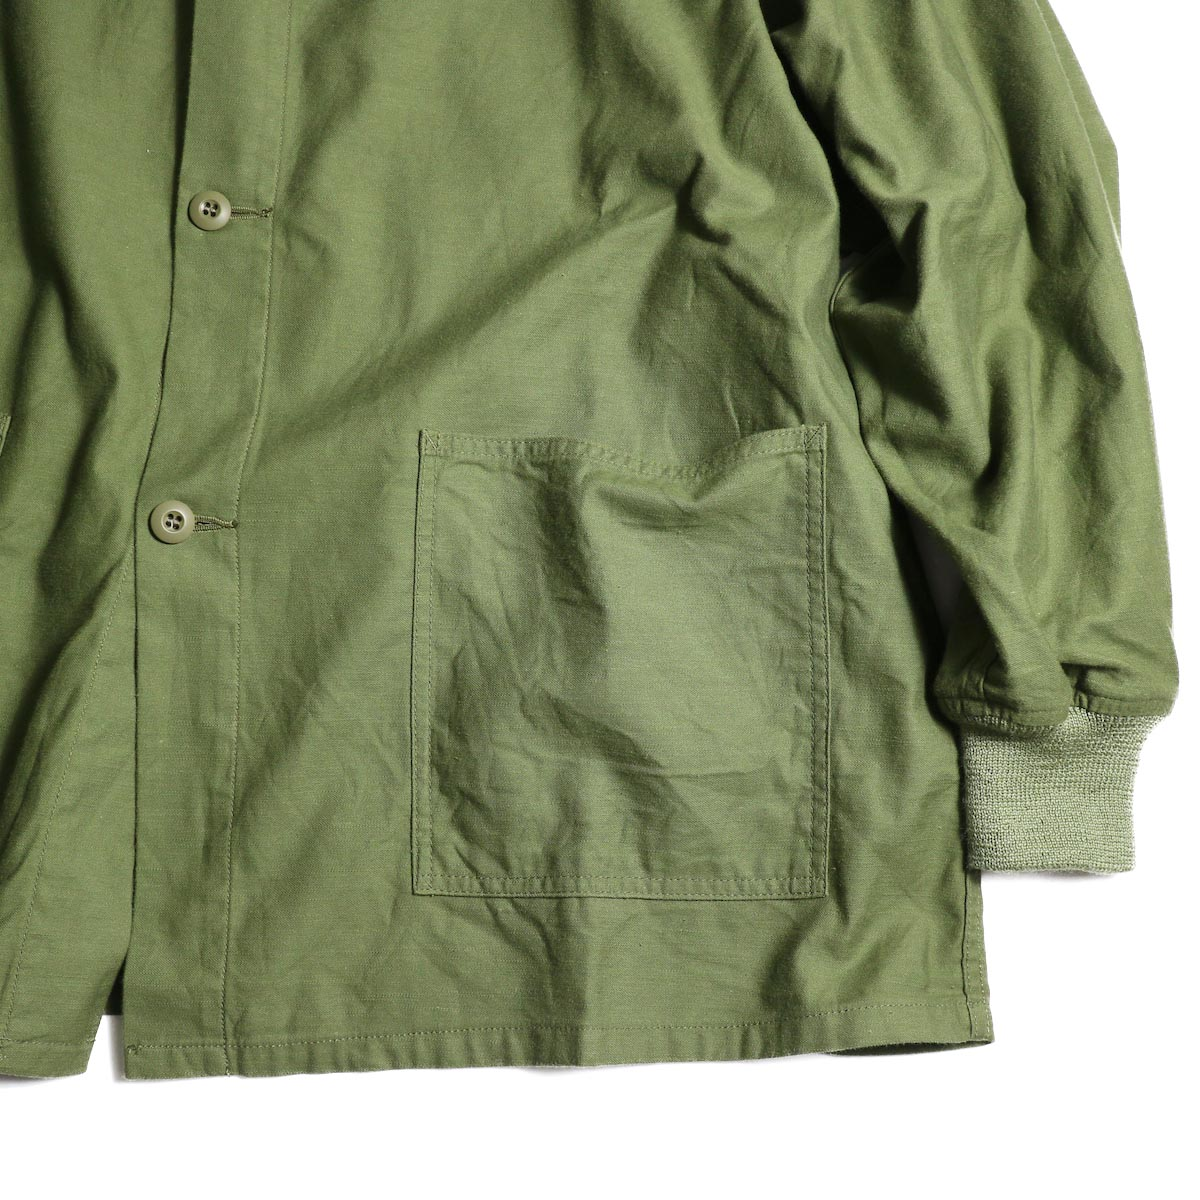 Needles / S.C. ARMY SHIRT - BACK SATEEN (Olive)リブ、ポケット